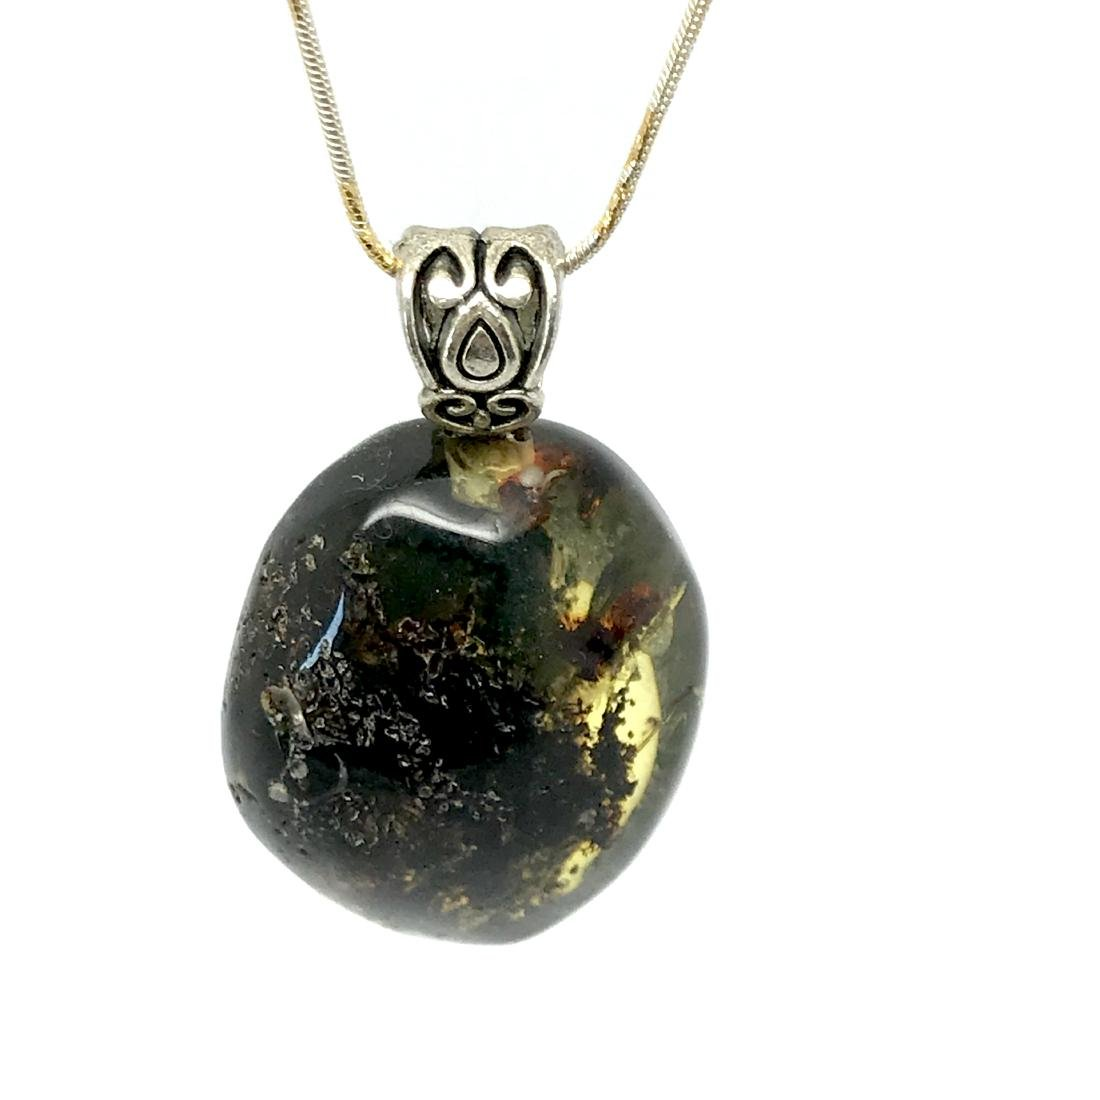 Green Baltic amber silver pendant charm 40x24mm